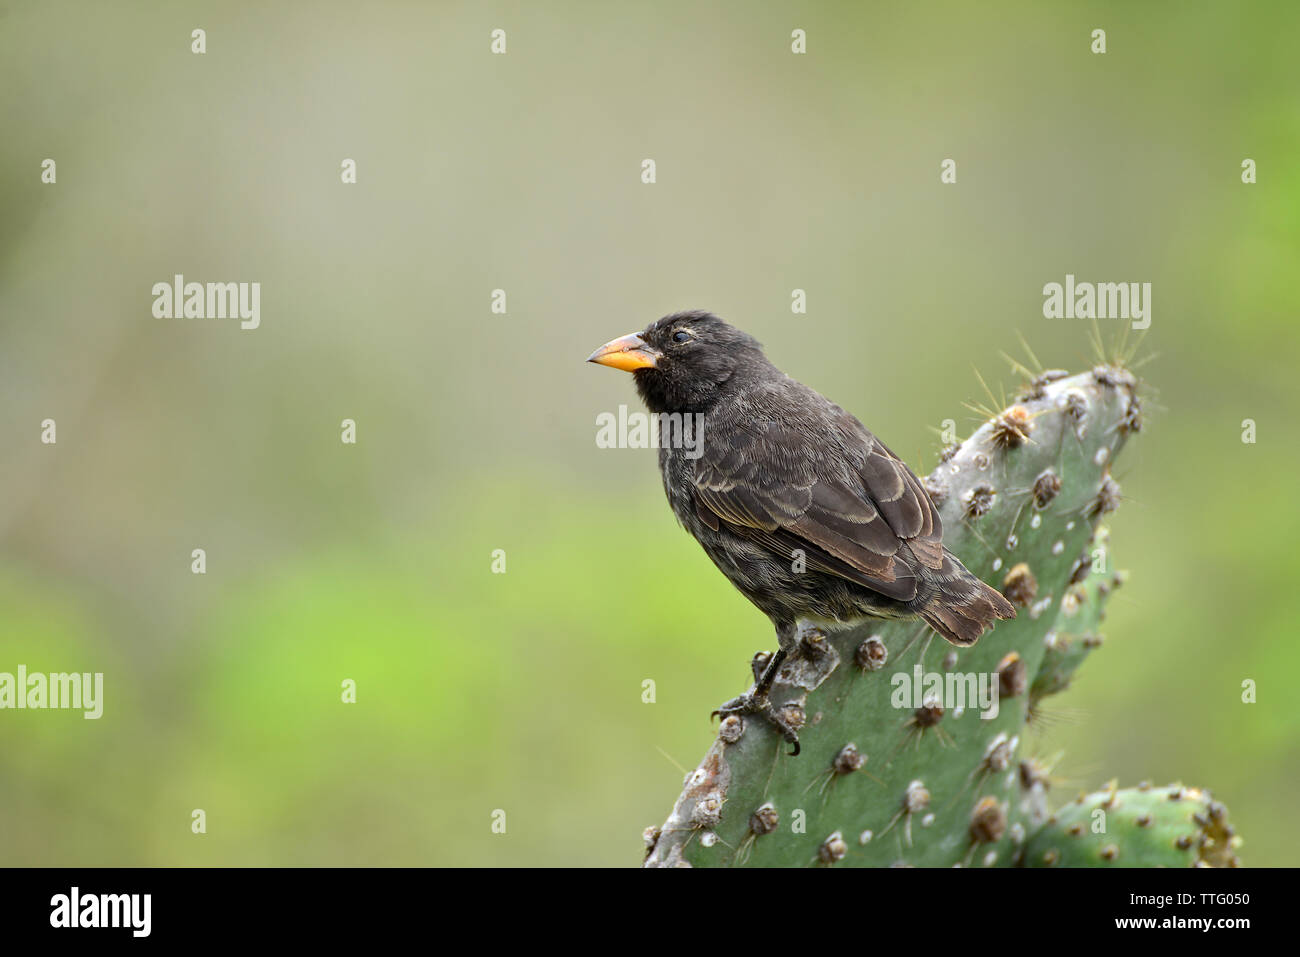 Medium ground finch ( Geospiza fortis) perched on a cactus. Galapagos National Park - Stock Image